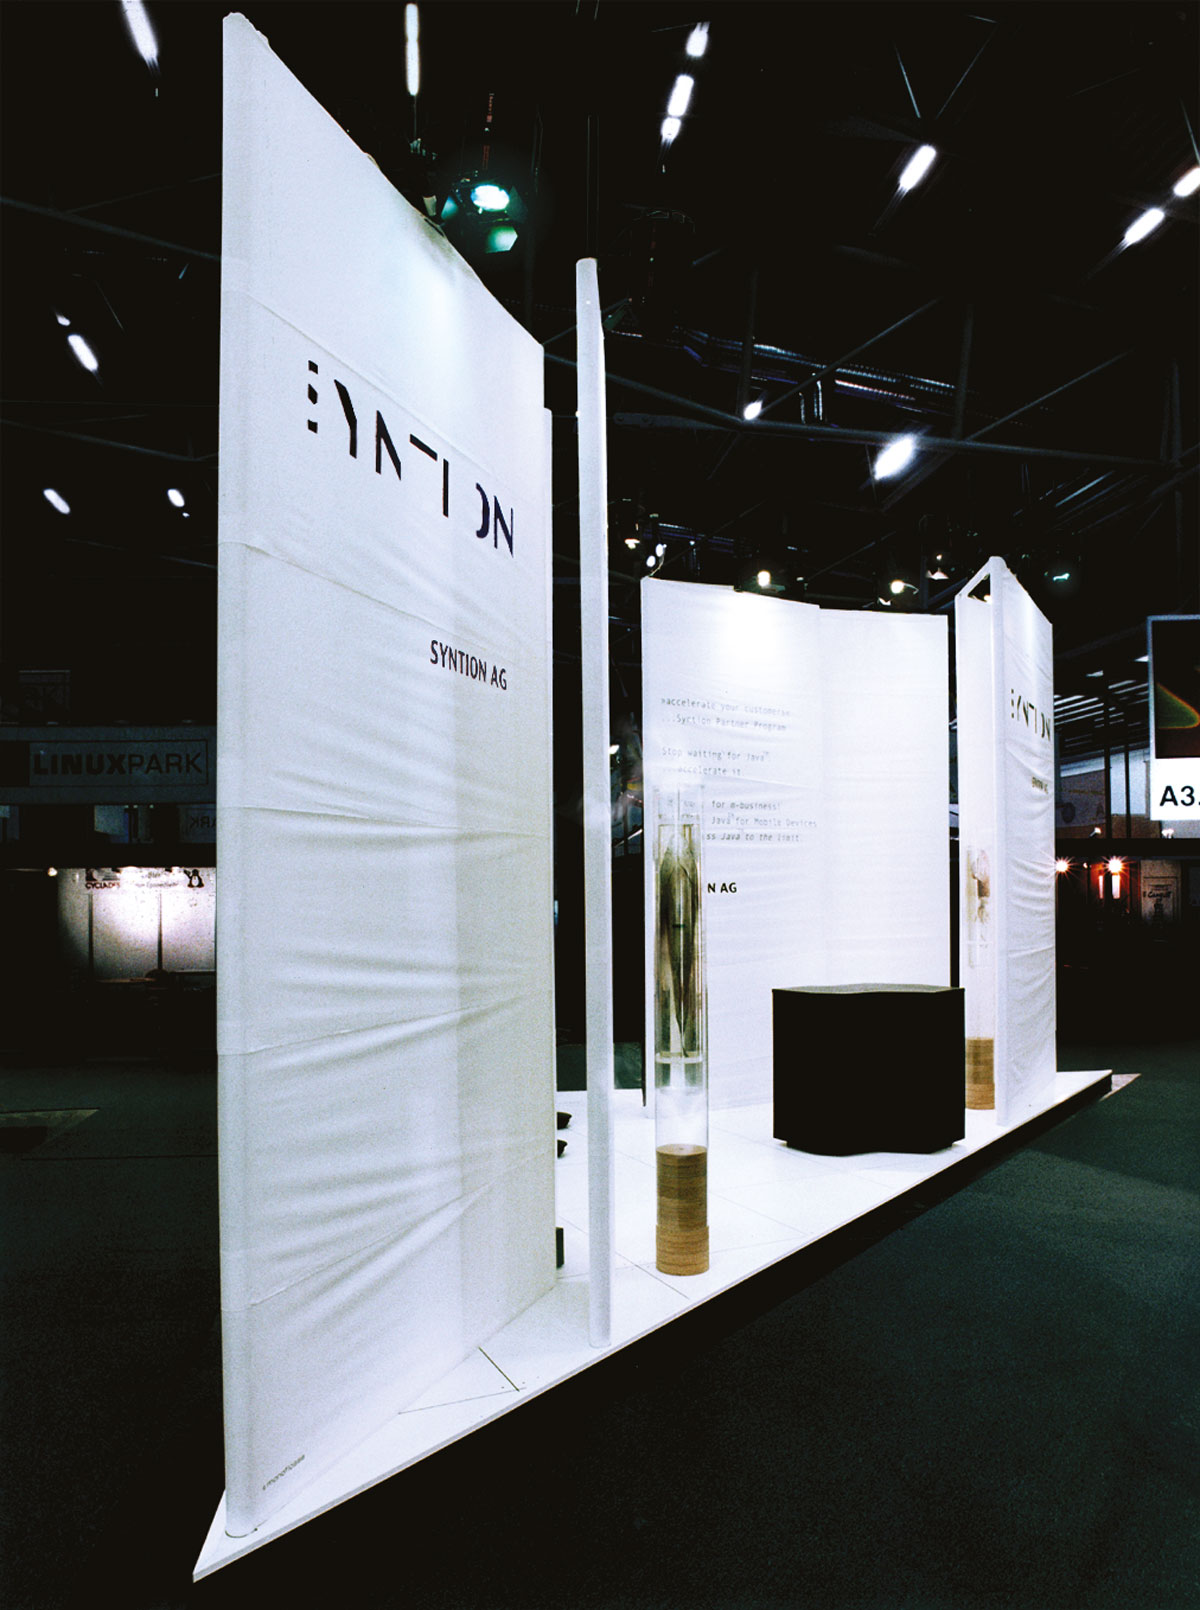 Exhibition Syntion AG